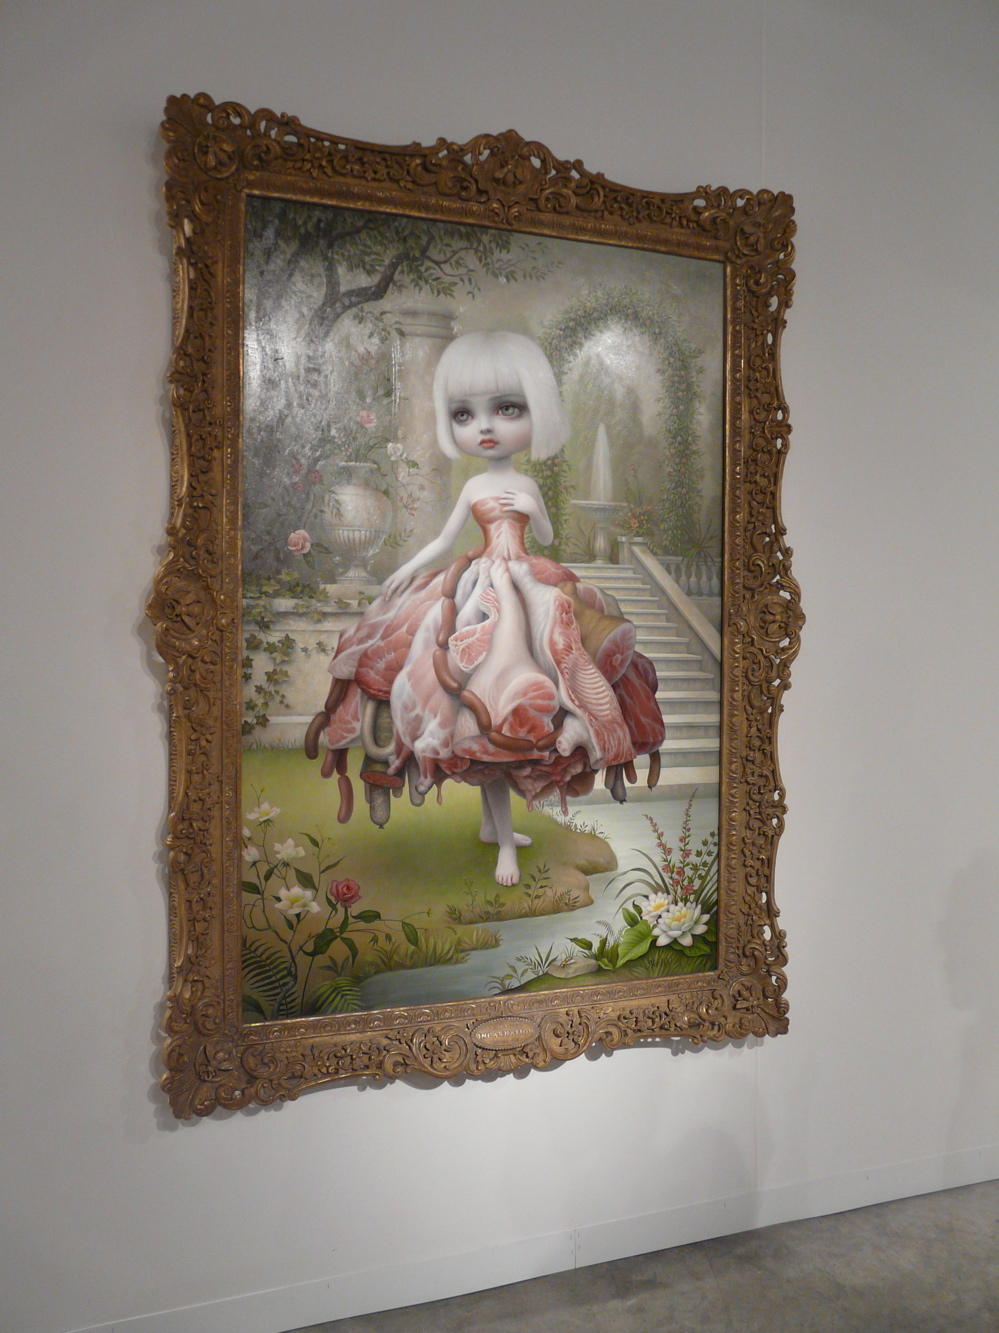 Mark Ryden - Incarnation (from Art Basel Miami '09)